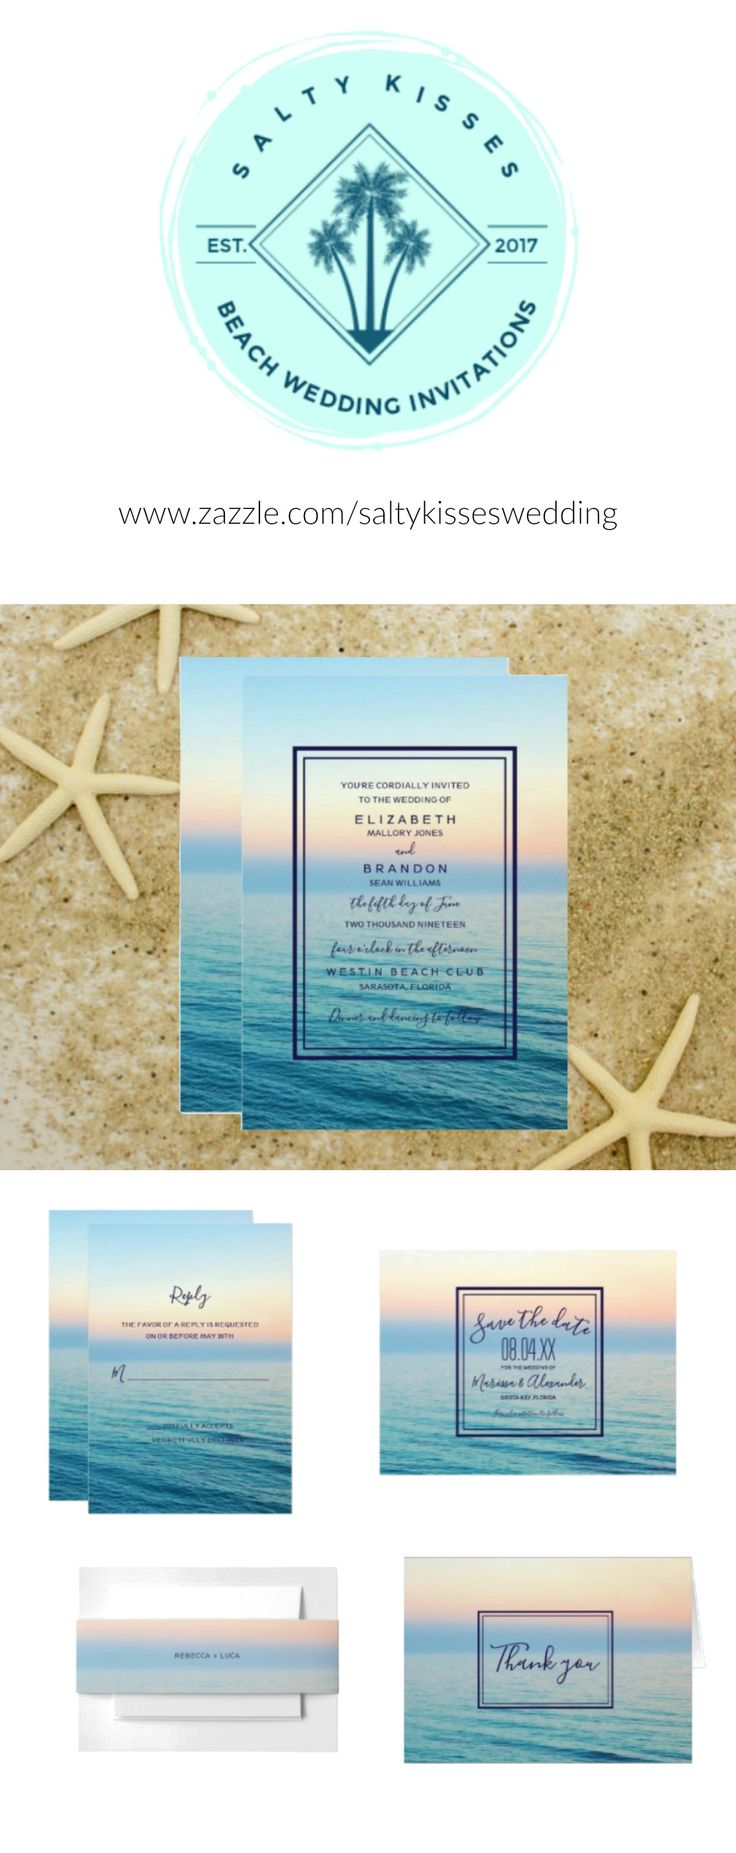 Sunset Skies Beach Wedding Invitation Paper Products For Your Celebration 50